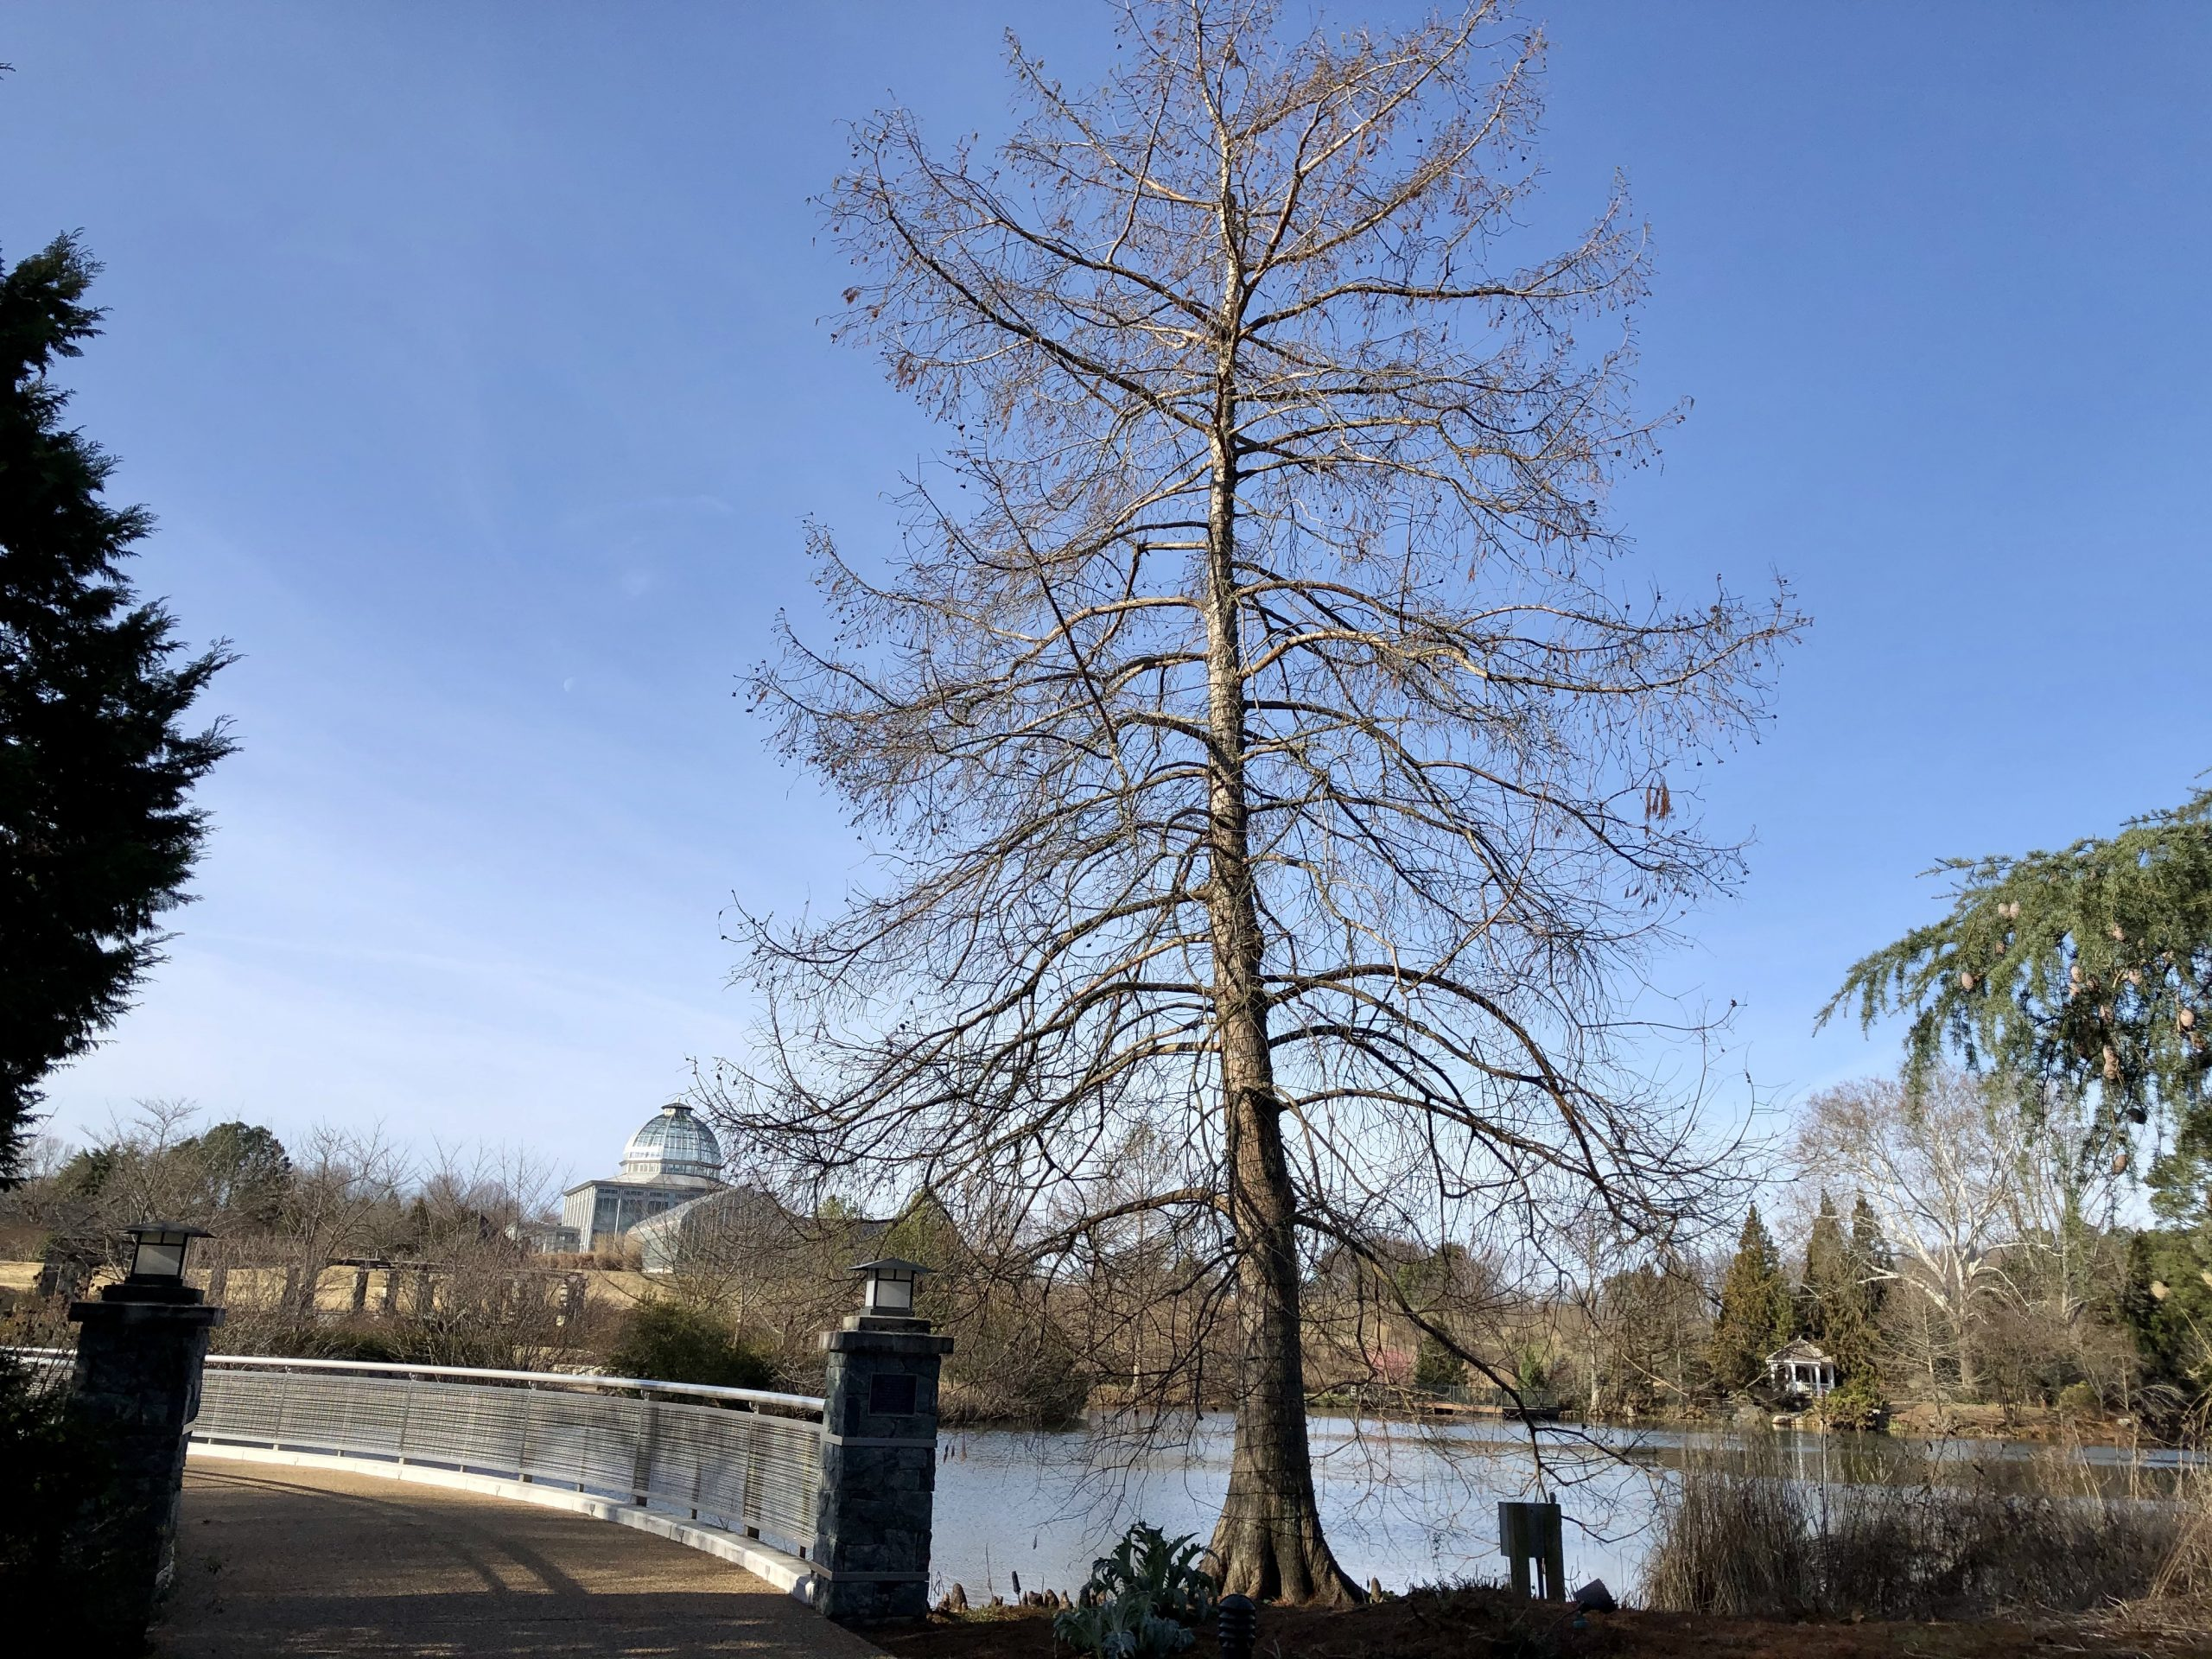 Baldcypress or Taxodium distichum at Lewis Ginter Botanical Garden